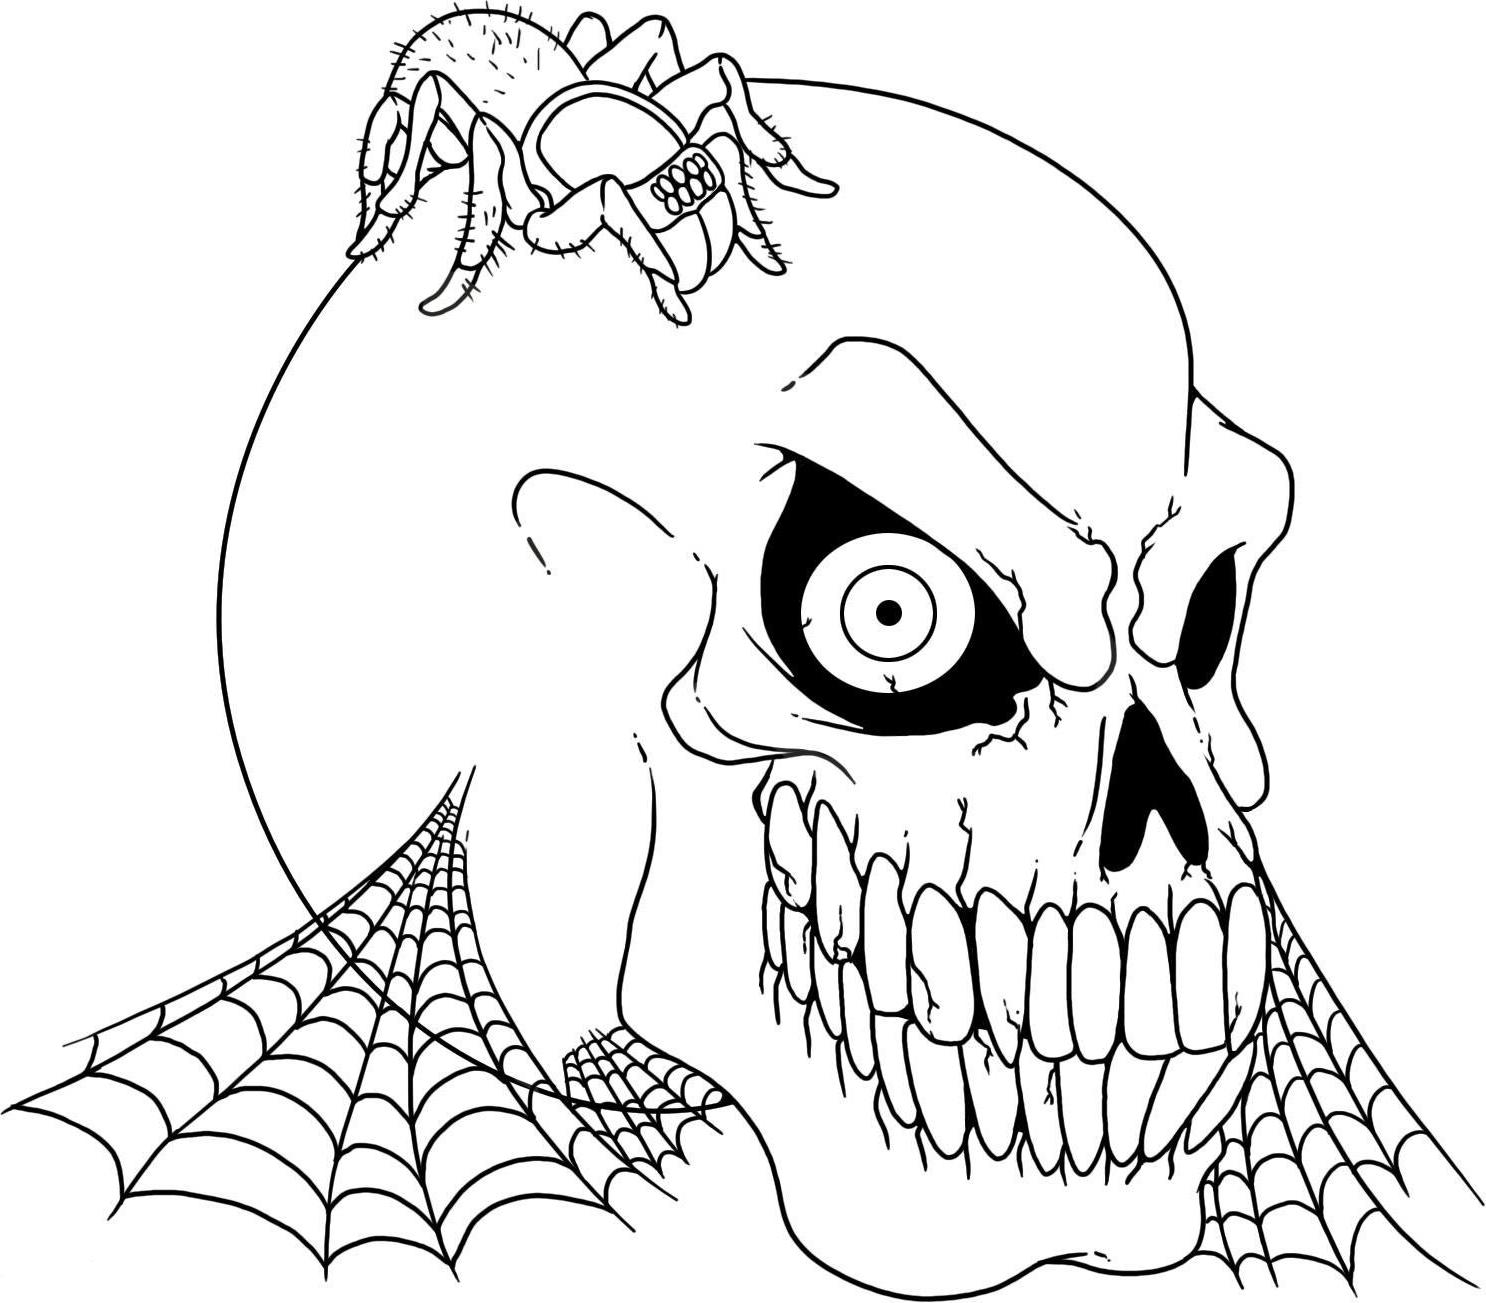 1486x1303 Cool Haloween Coloring Pages Coloring To Amusing Fun Free